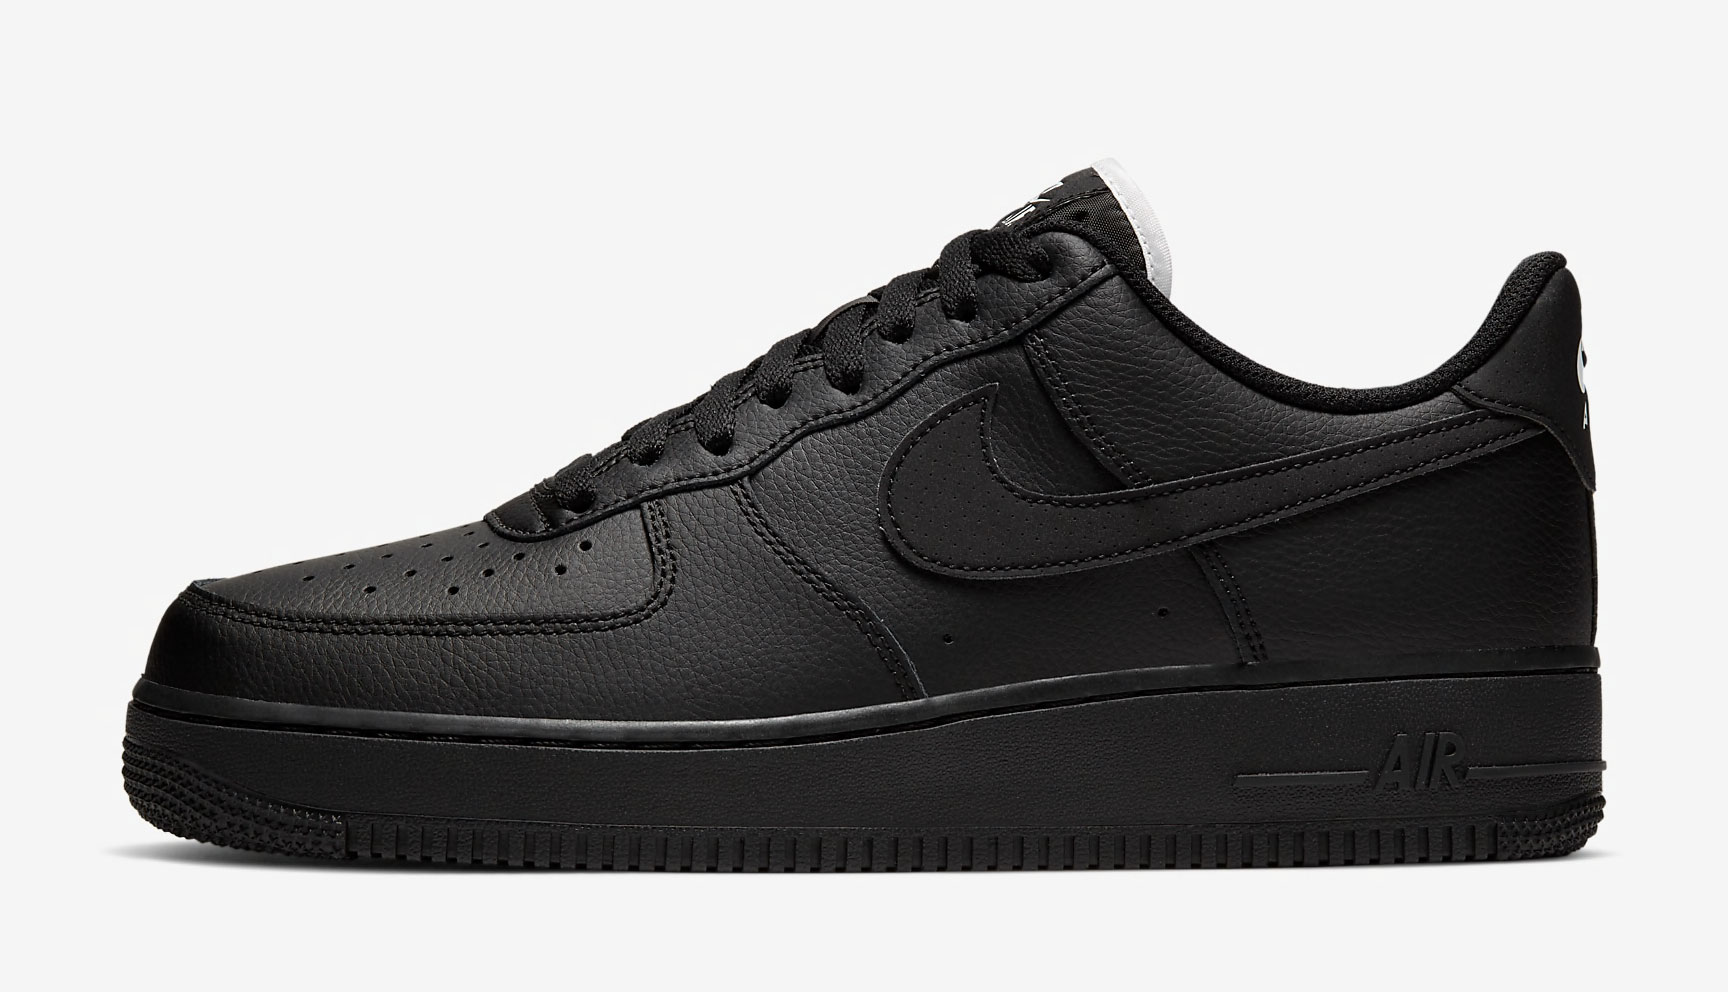 nike-air-force-1-low-07-black-white-release-date